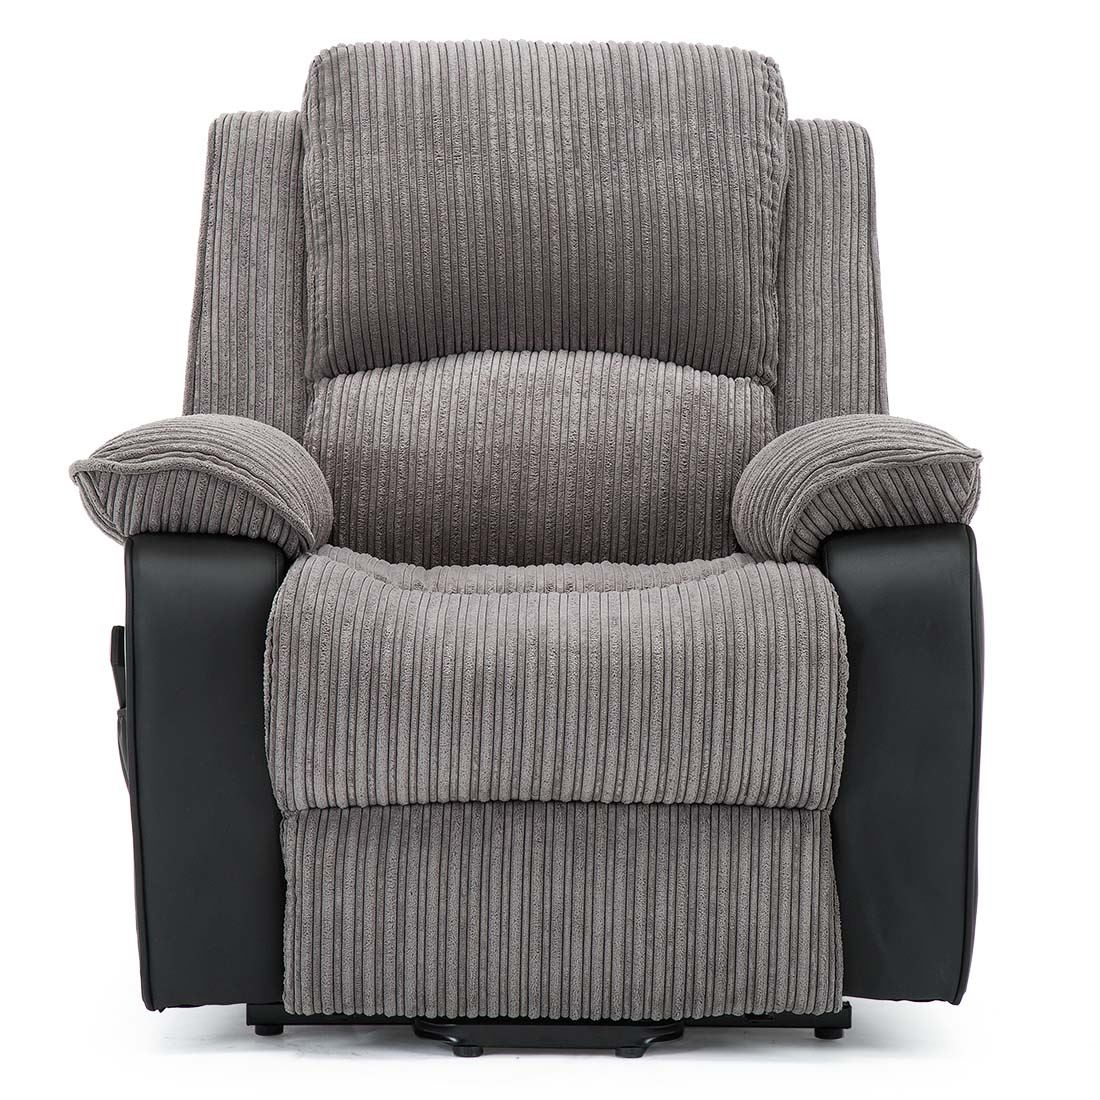 POSTANA-DUAL-MOTOR-RISER-RECLINER-JUMBO-CORD-FABRIC-ARMCHAIR-MOBILITY-CHAIR